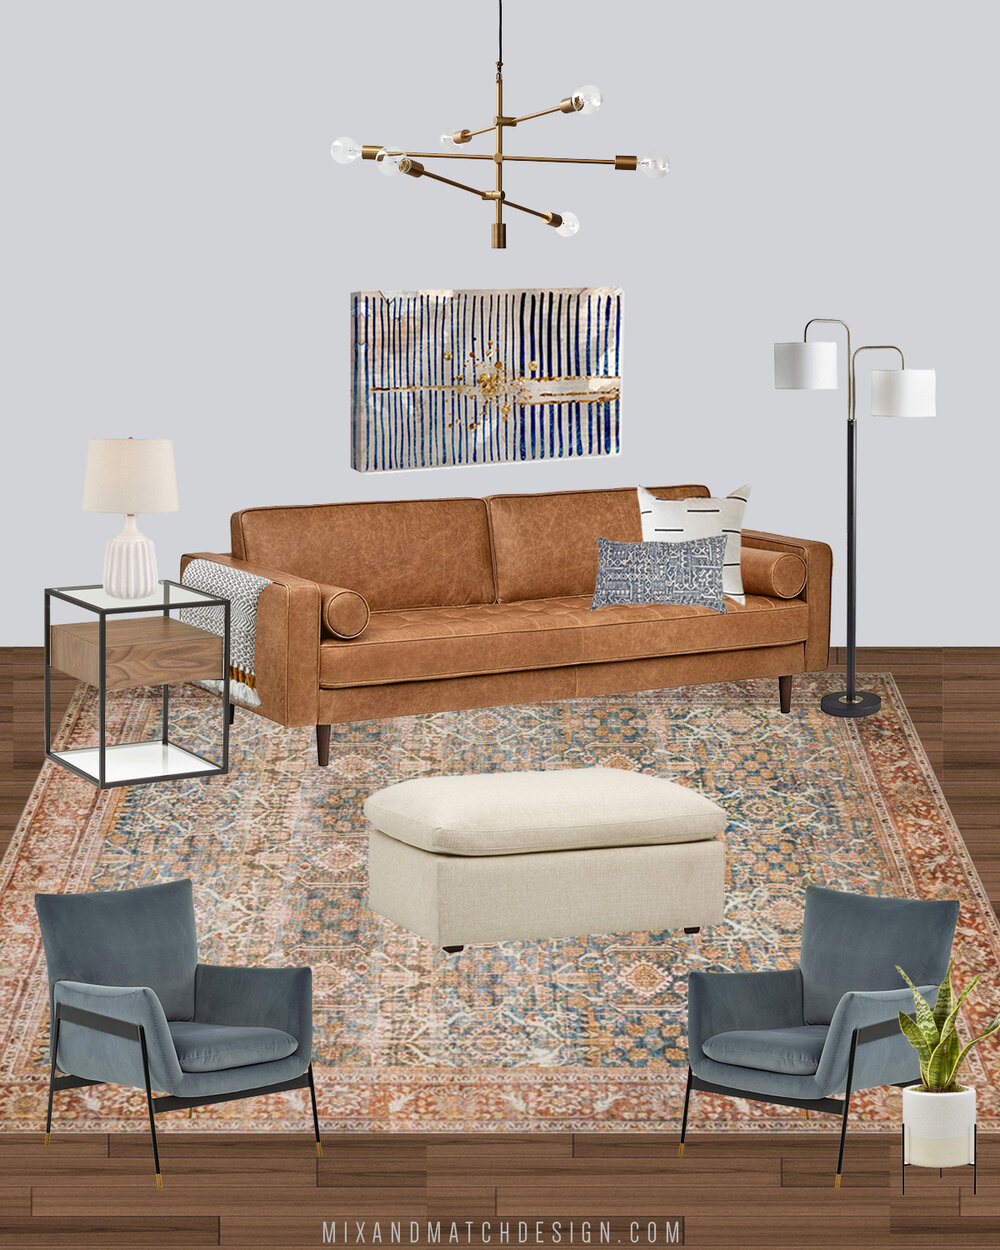 Would you believe that everything in this modern eclectic living room came from Amazon? I'm sharing the sources, my thoughts behind the design, and some tips on making Amazon feel smaller when you're shopping over on the blog!